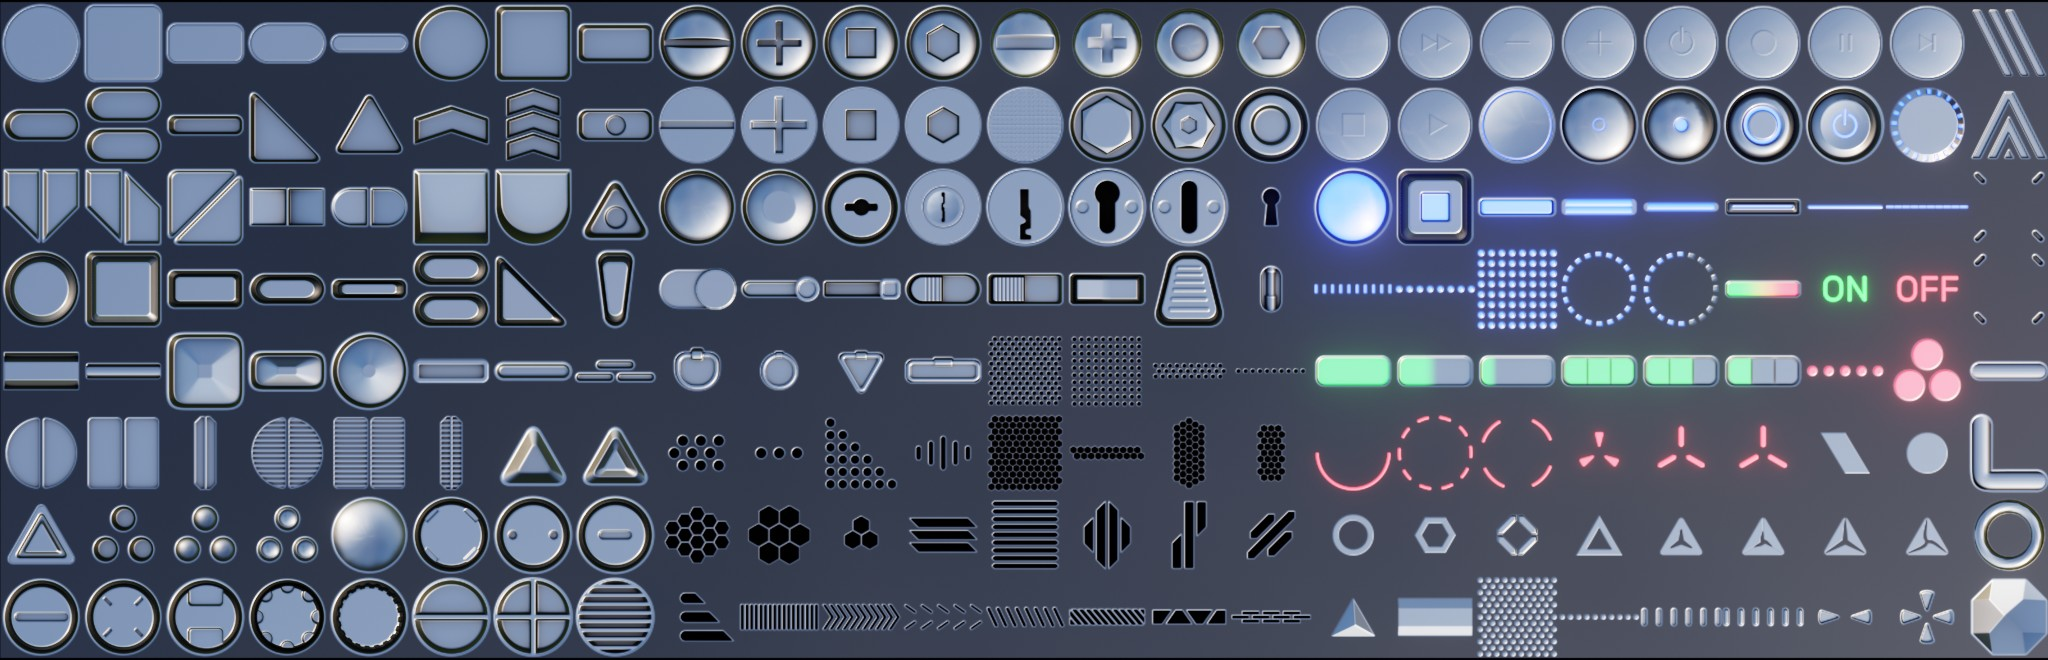 200 Hard Surface Decals for Decal Machine 2.1 in Blender